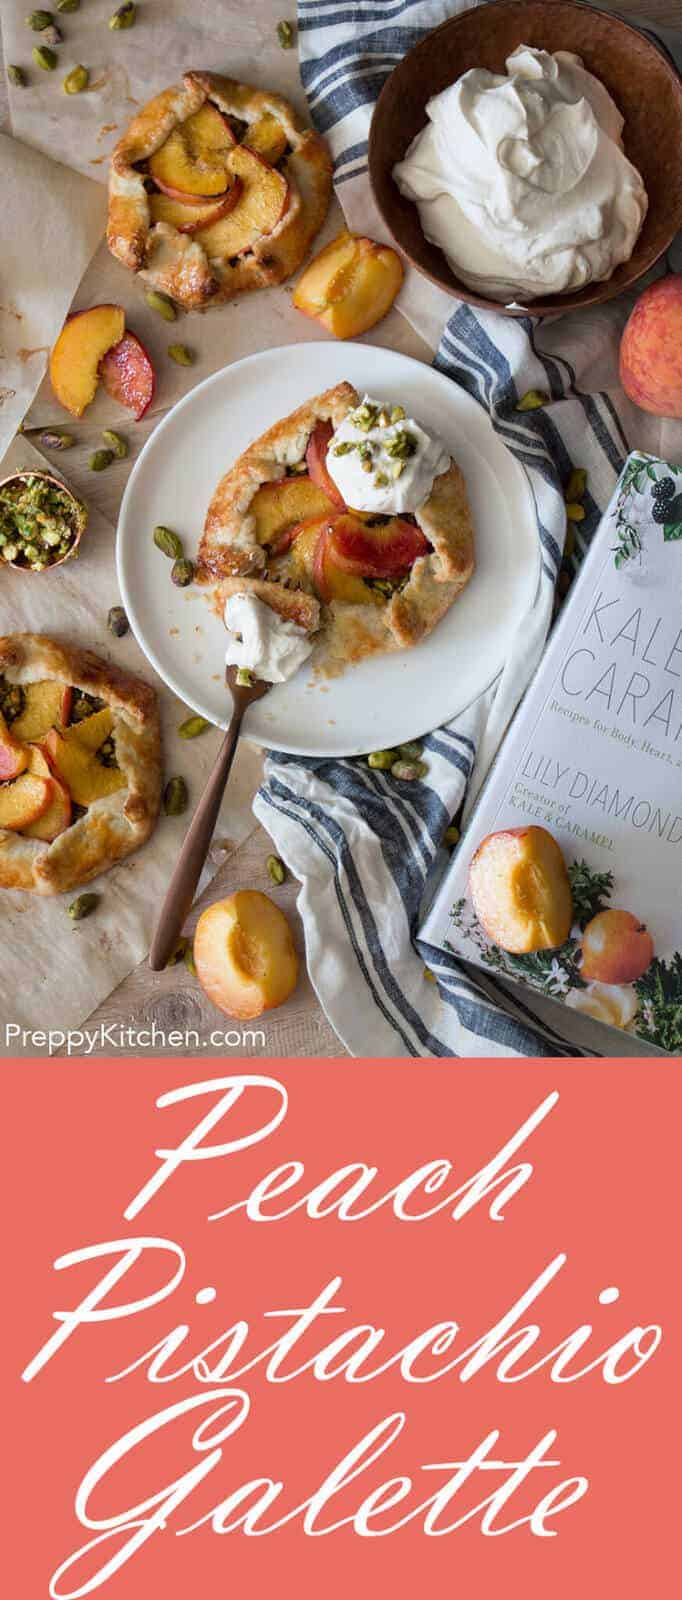 The most amazing peach and pistachio galettes with a dreamy rosewater cardamom cream. This incredible recipe is from the new cookbook by Kale & Caramel.